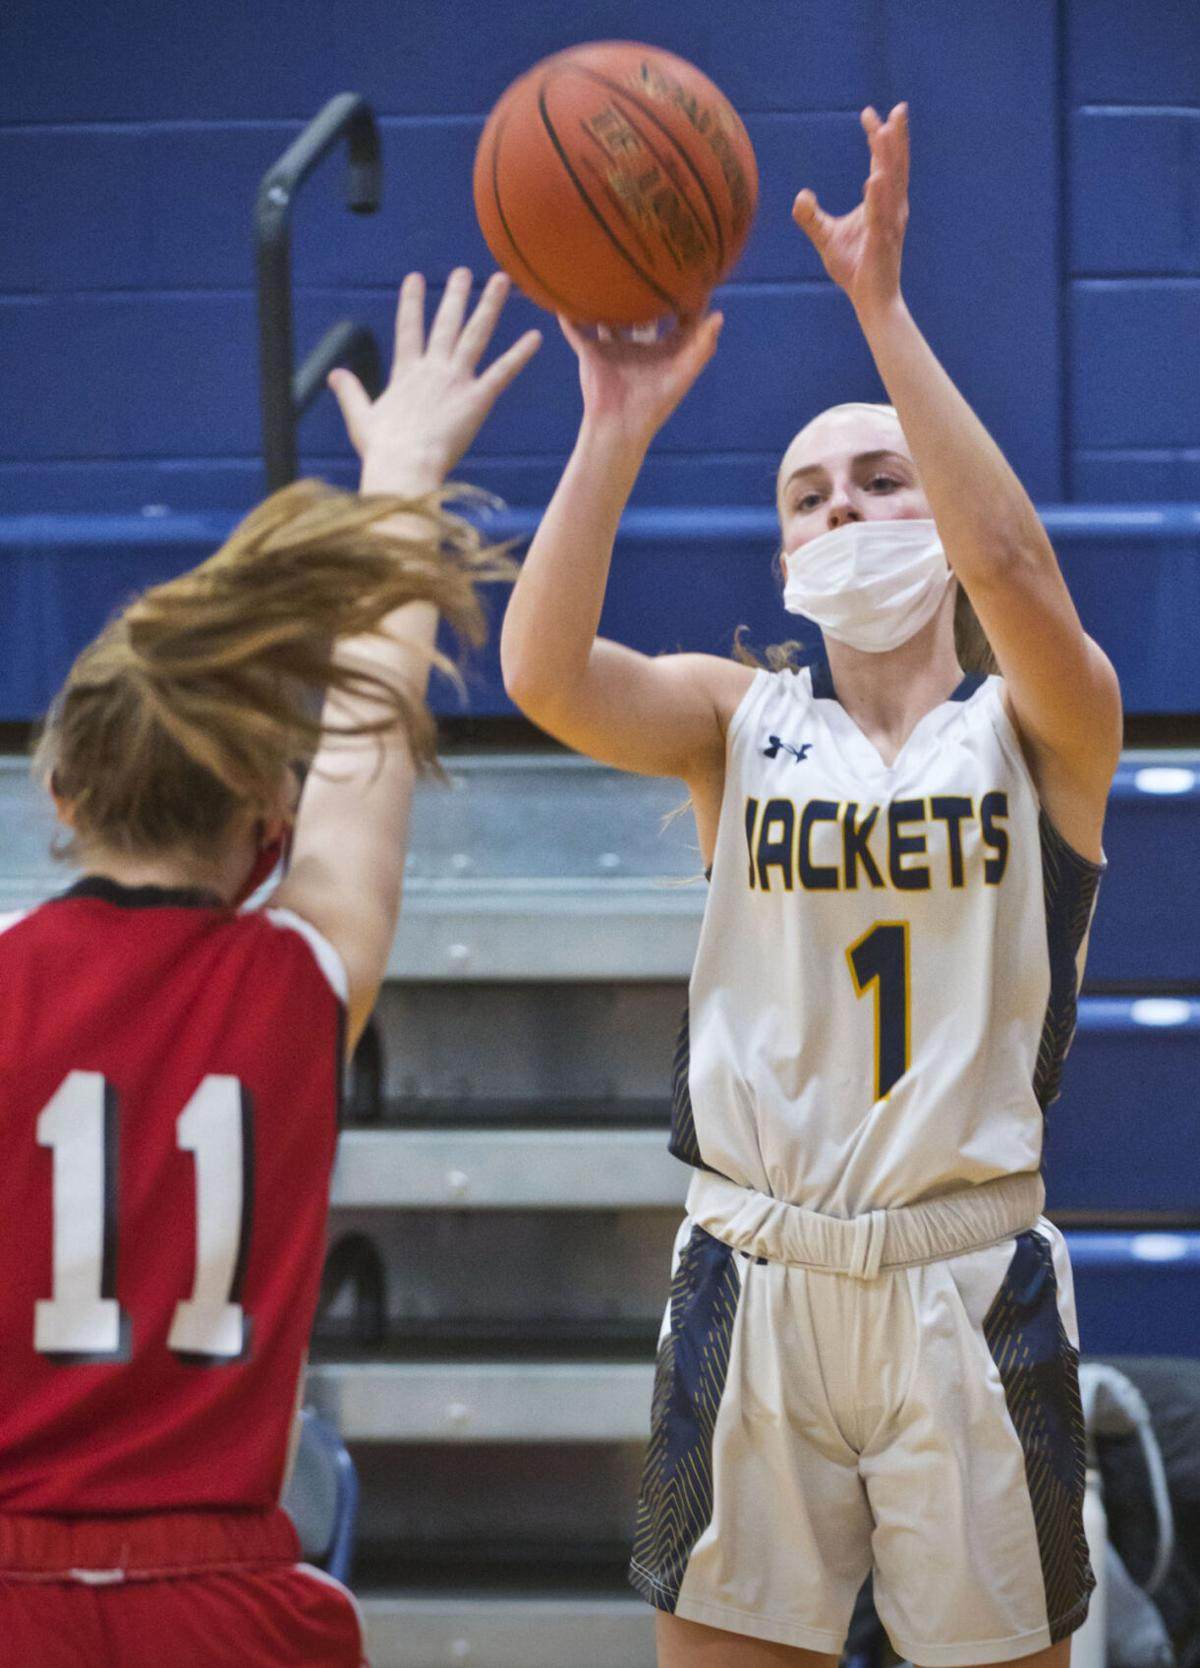 Plumley paces Yellowjackets to win